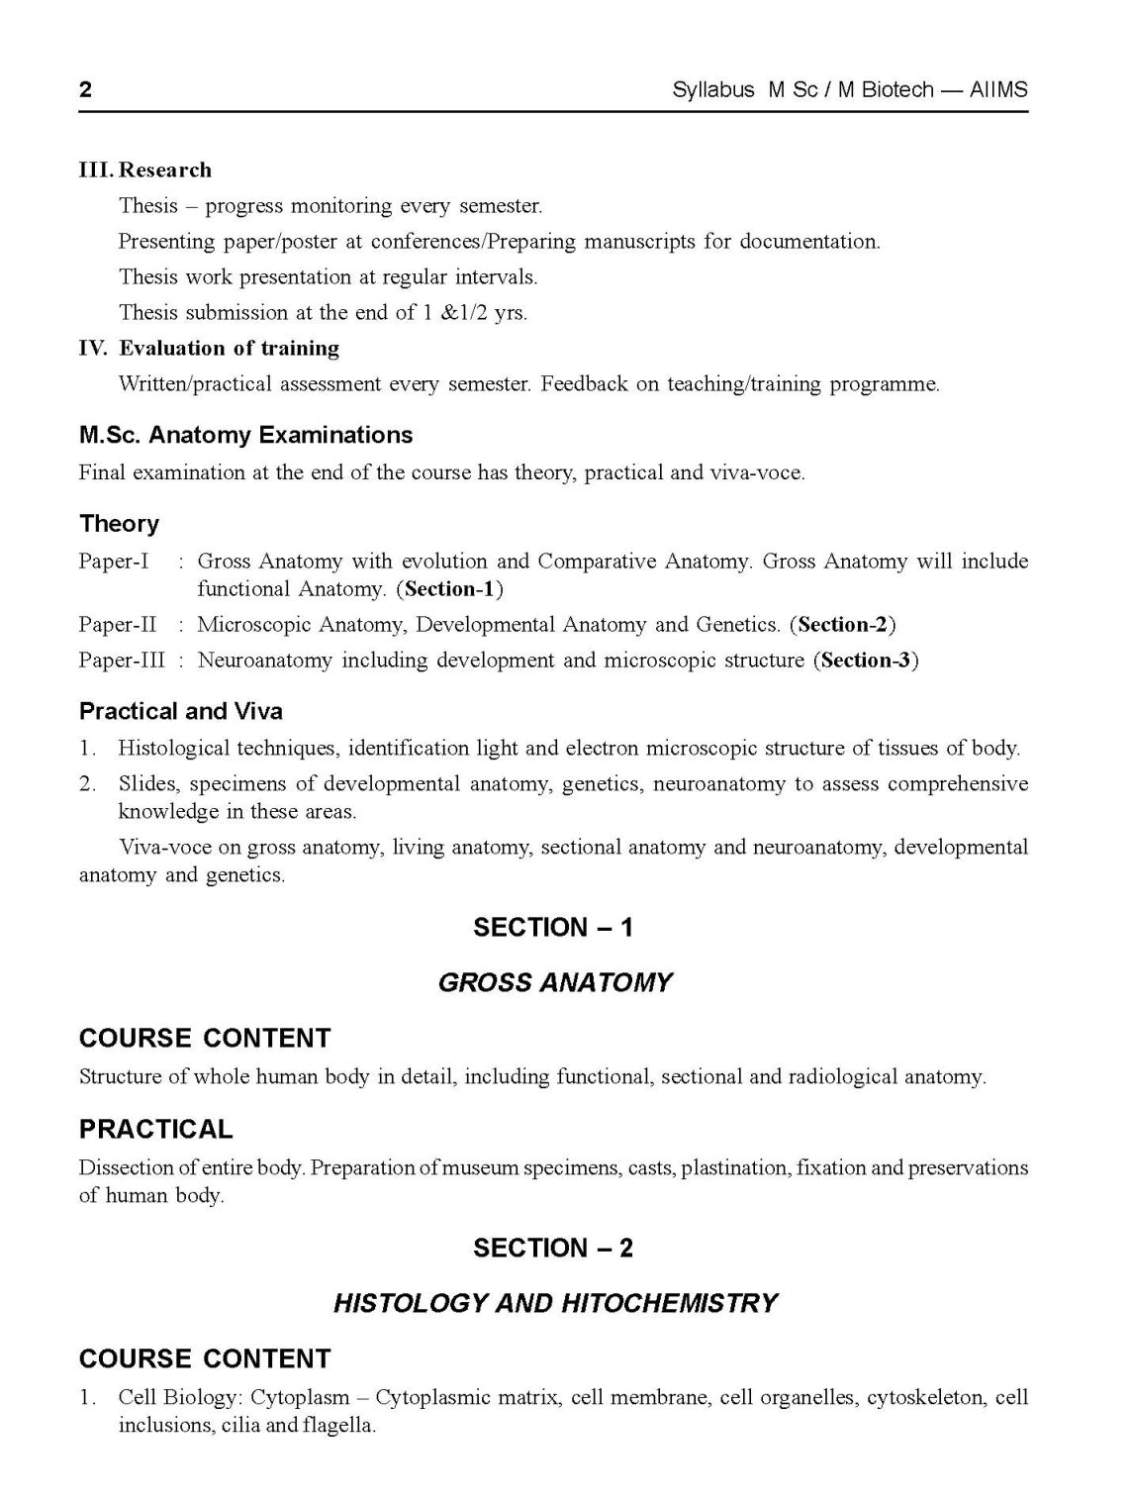 Msc Anatomy Syllabus 2018 2019 Student Forum